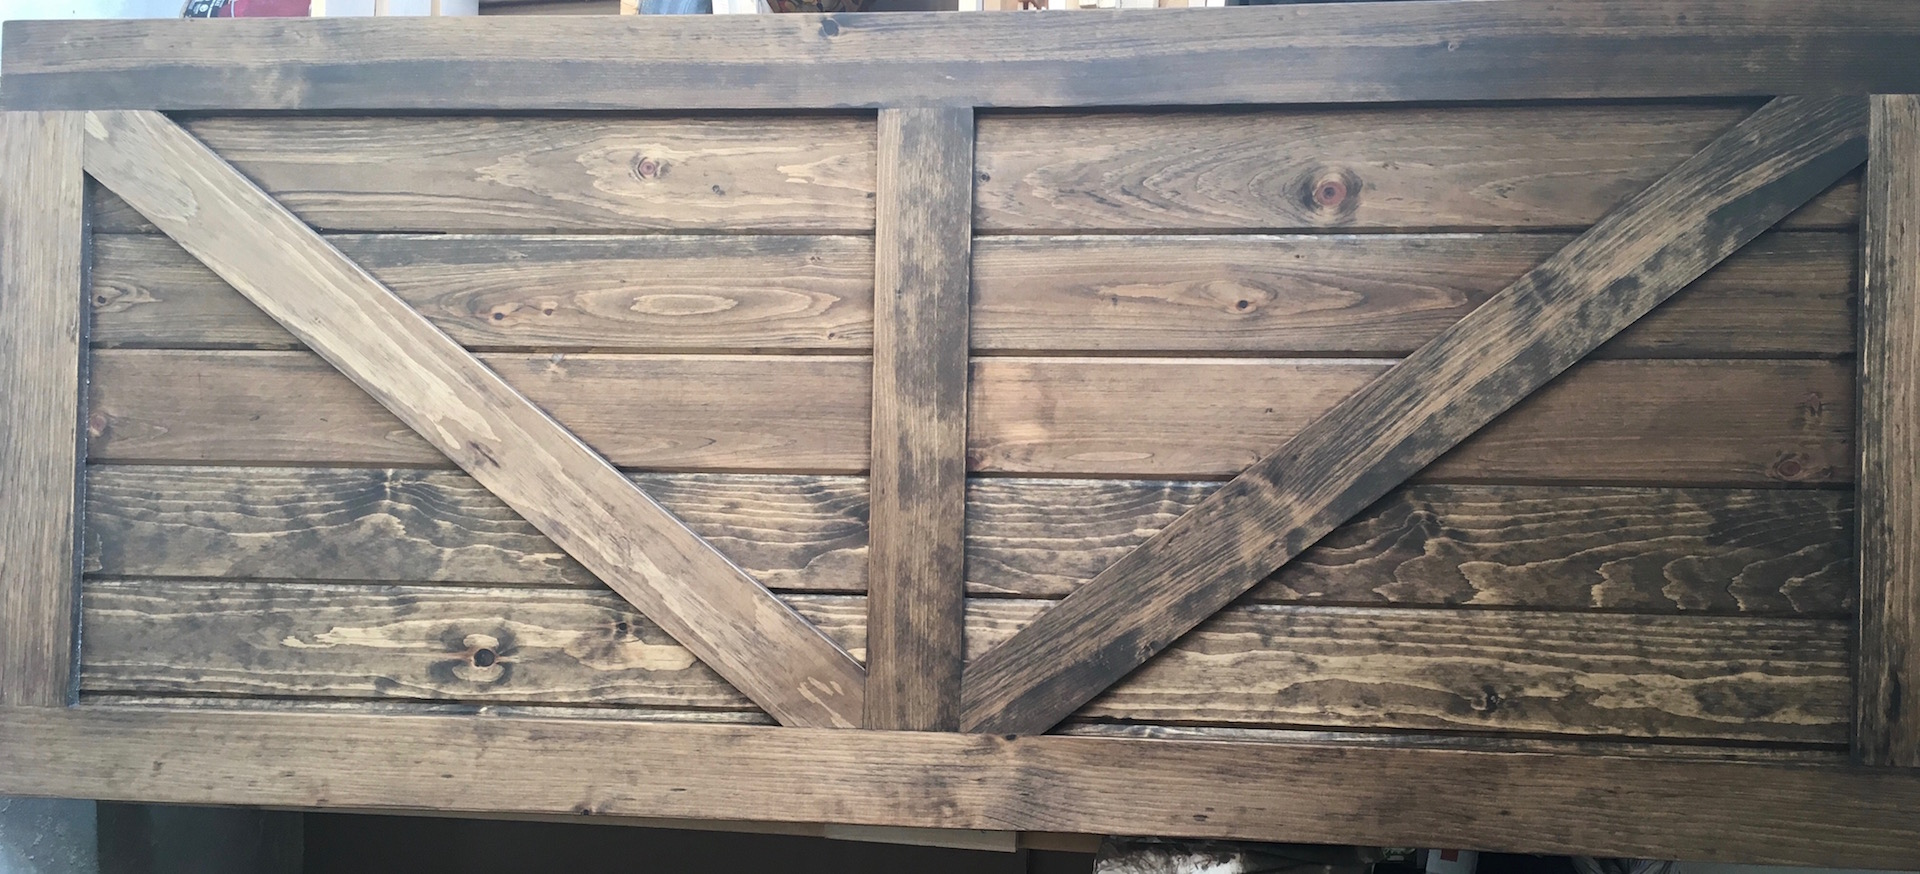 table size bedroom queen wood brown pure varnish king logs headboard frame tree rocking bed side pine unpolished door hickory classic rails barn